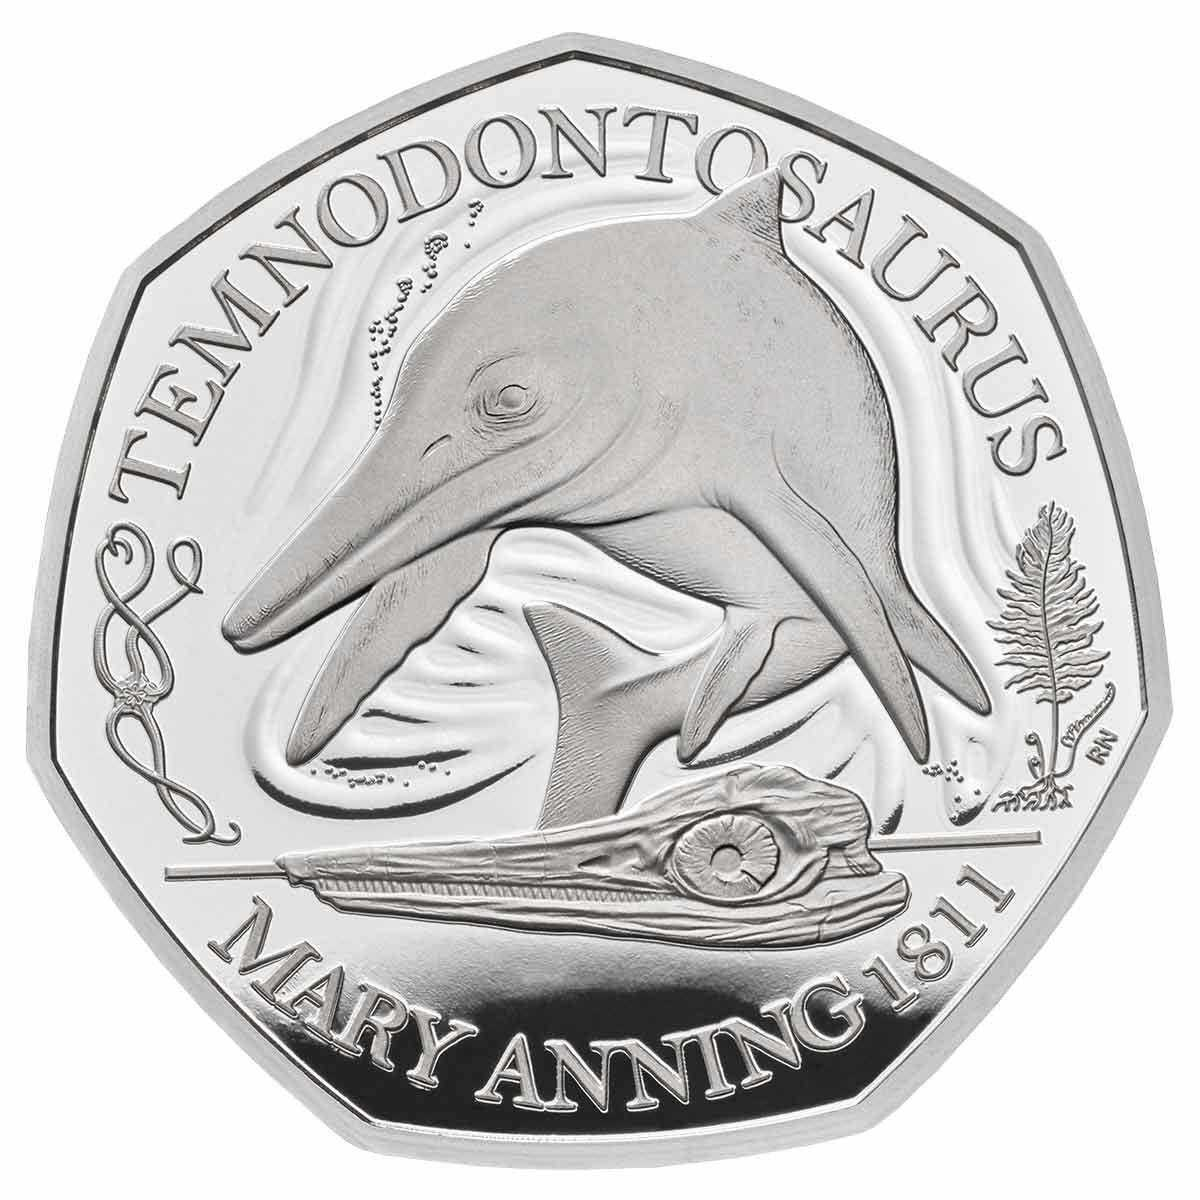 2021 Temnodontosaurus 50p Silver Proof Coin